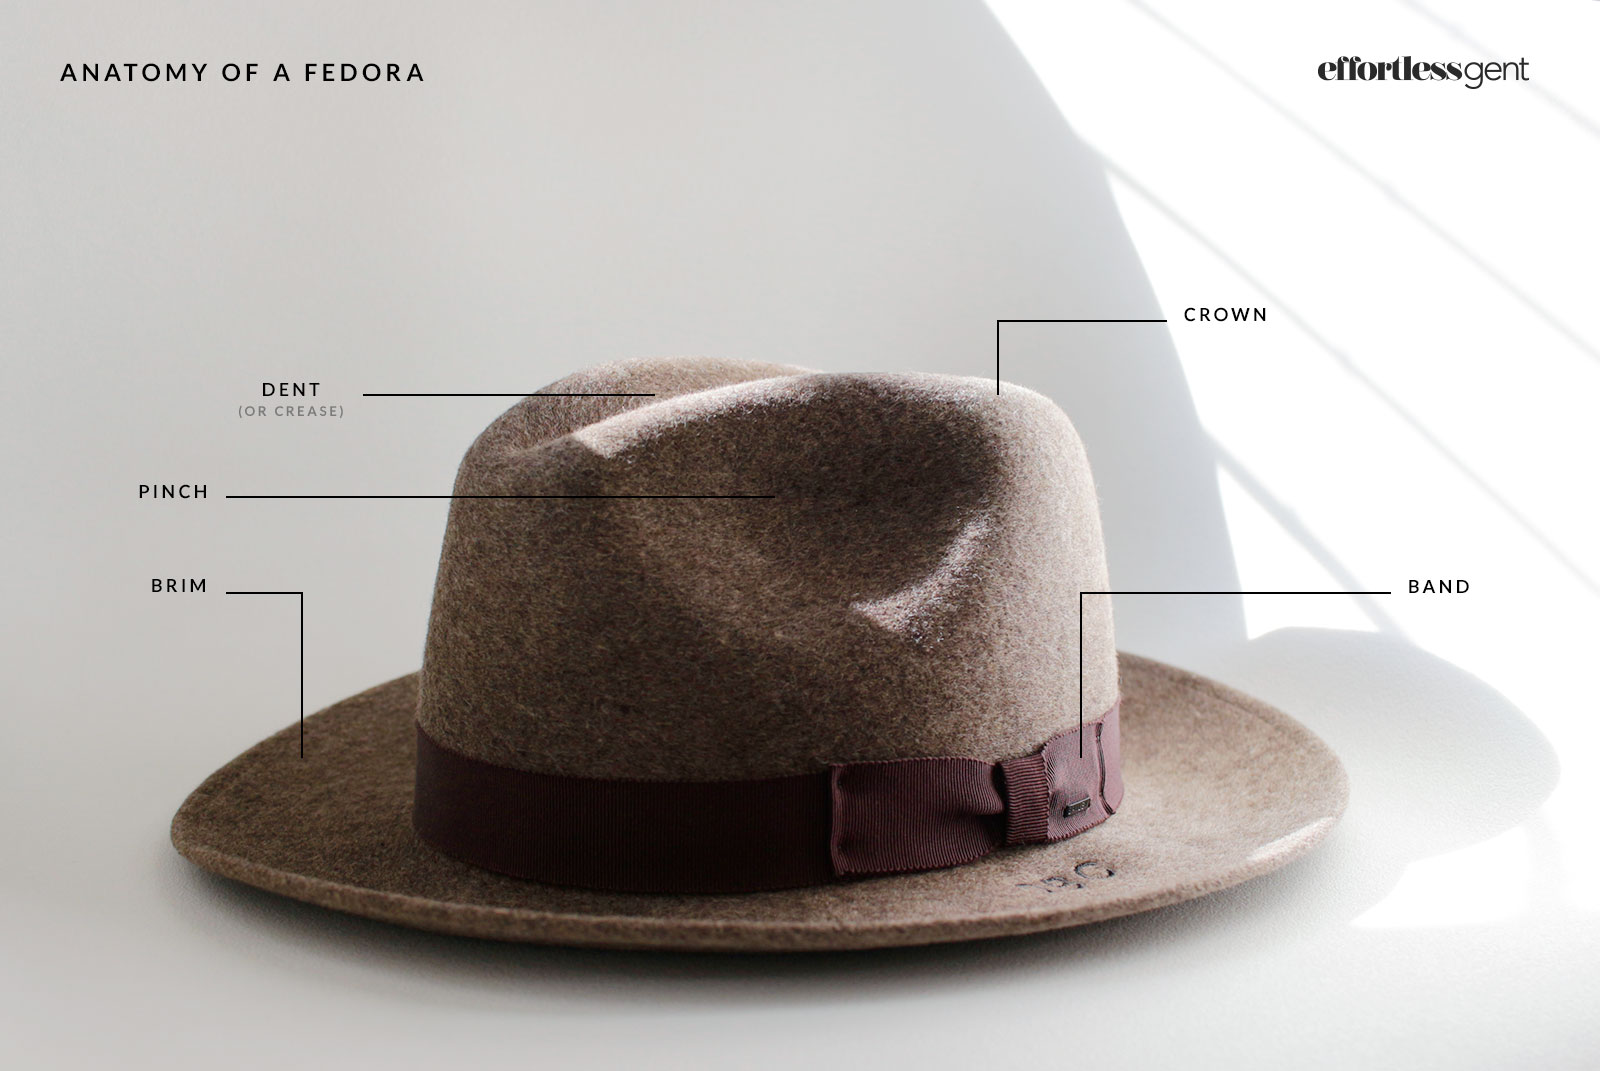 Anatomy of a Fedora - Everything You Need To Know About Fedoras